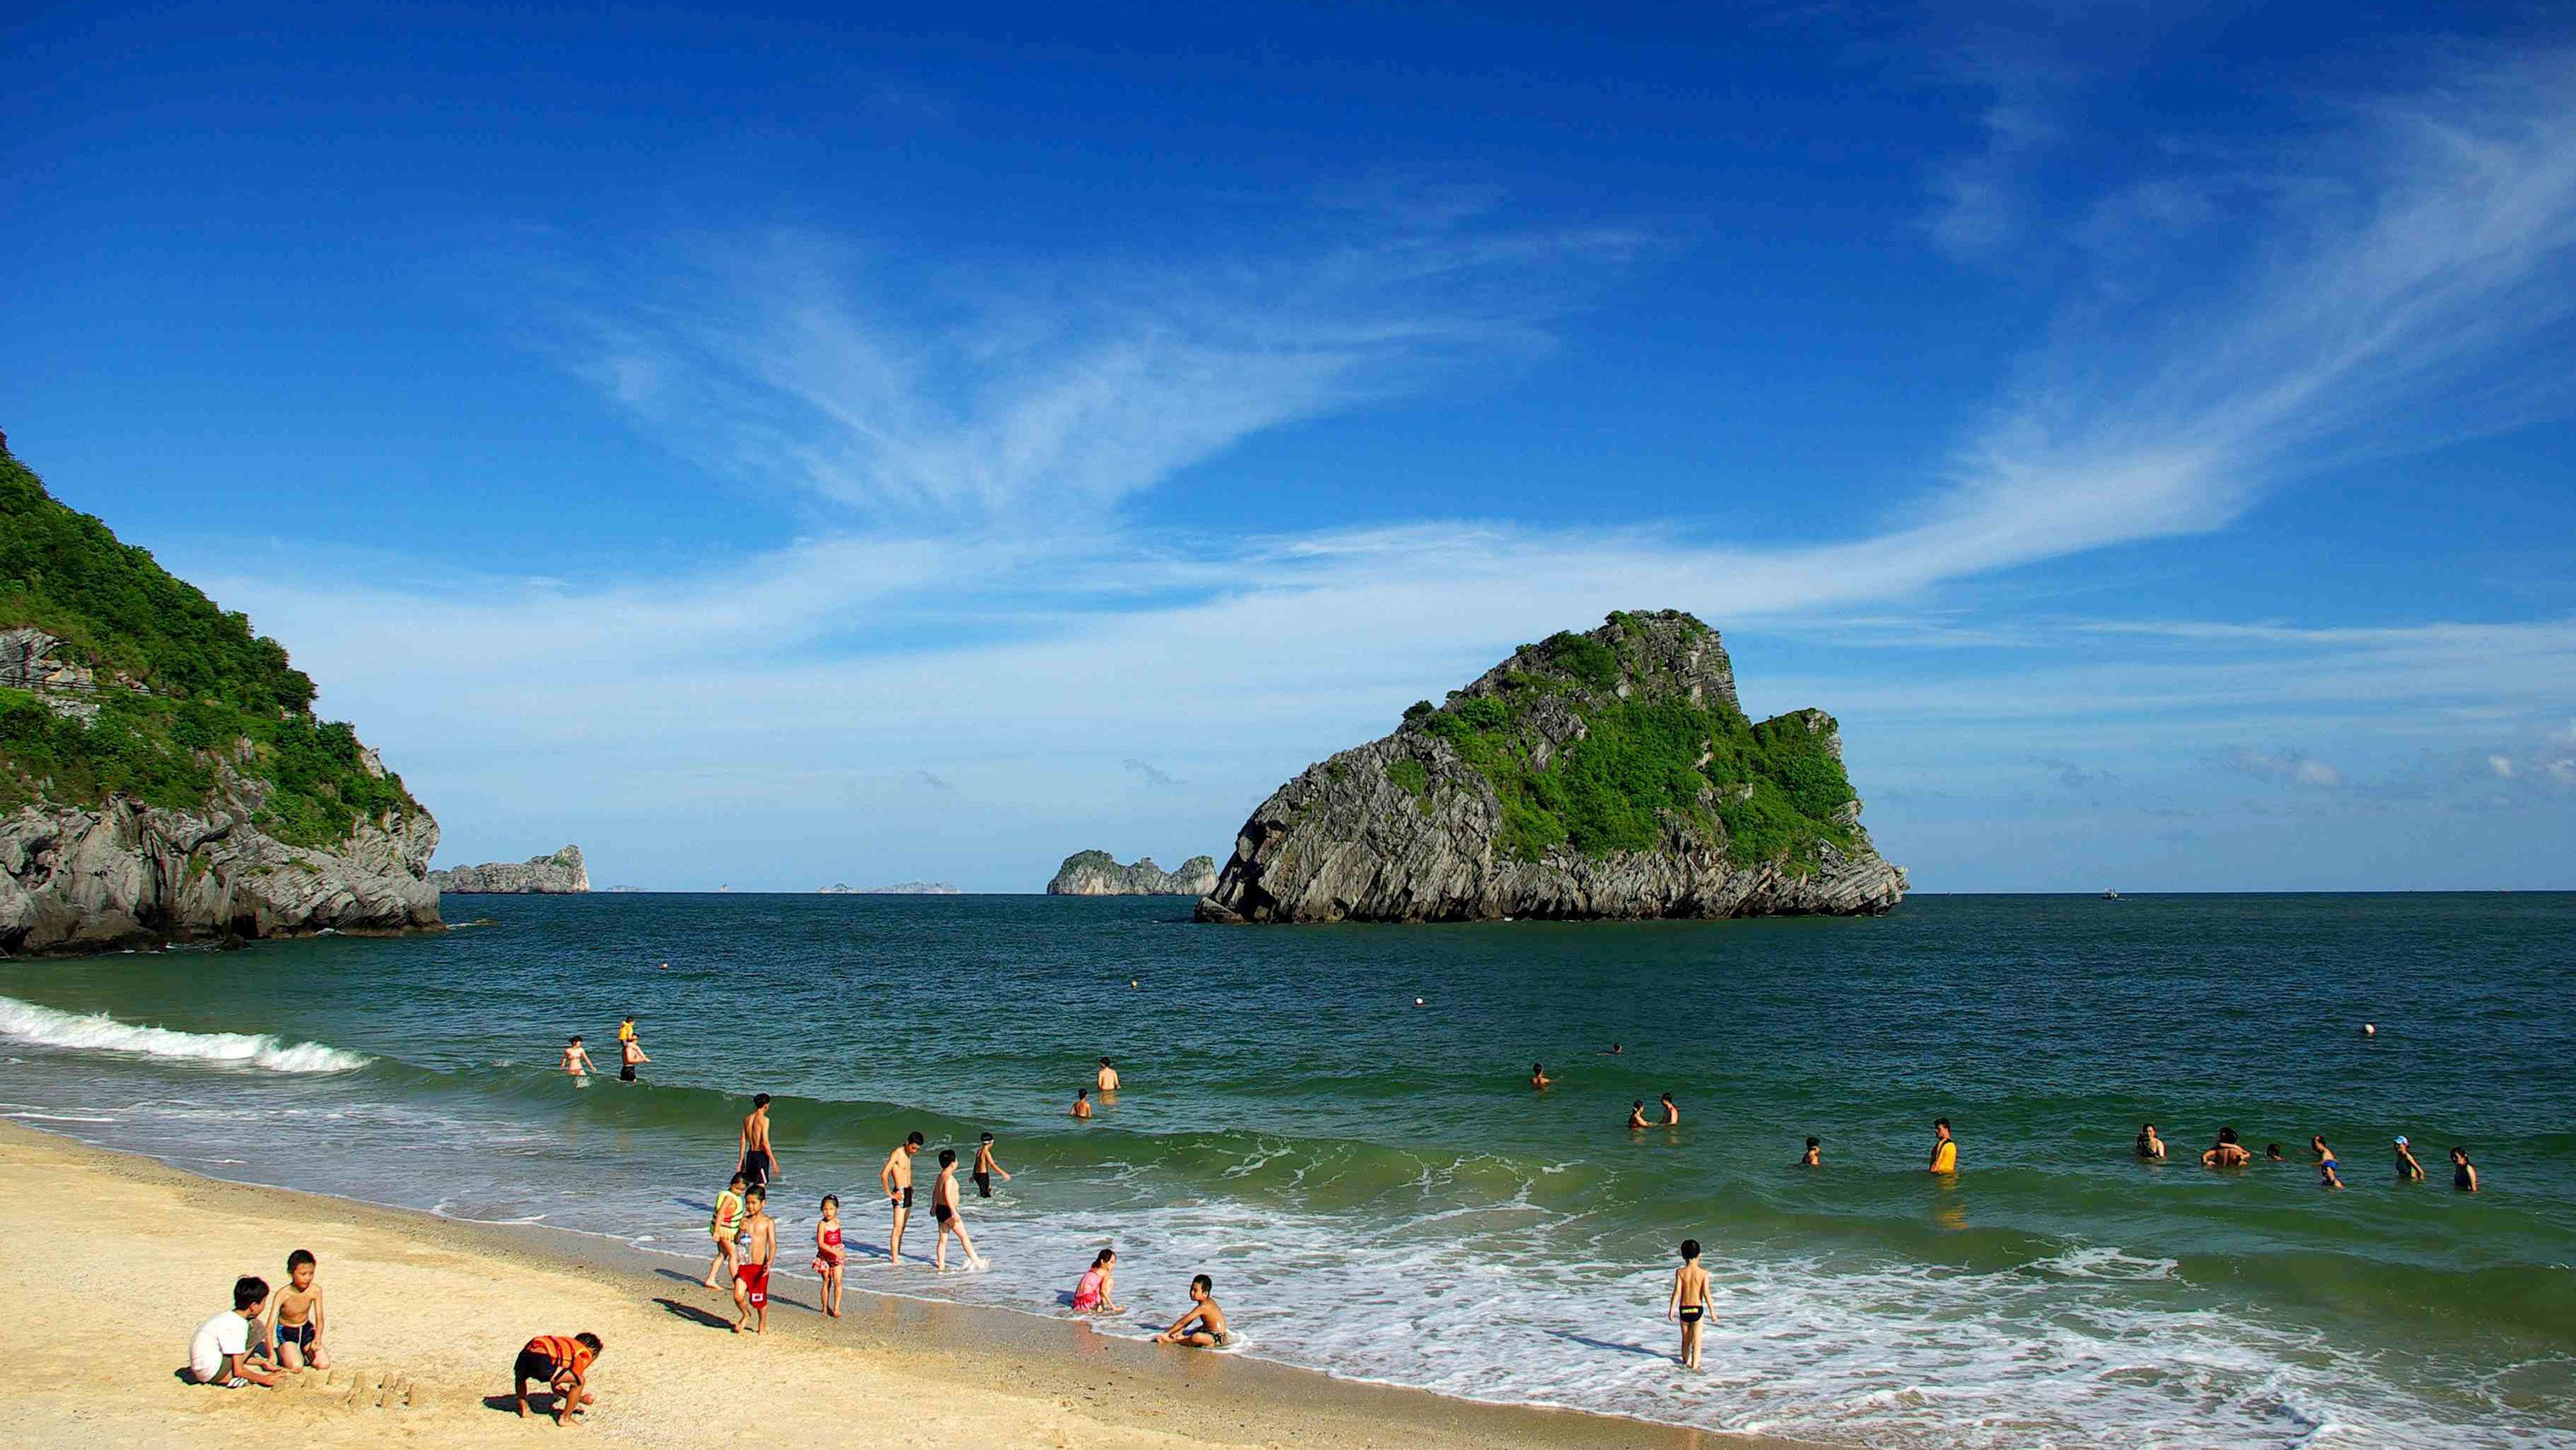 Beachgoers playing in the water in Halong Bay